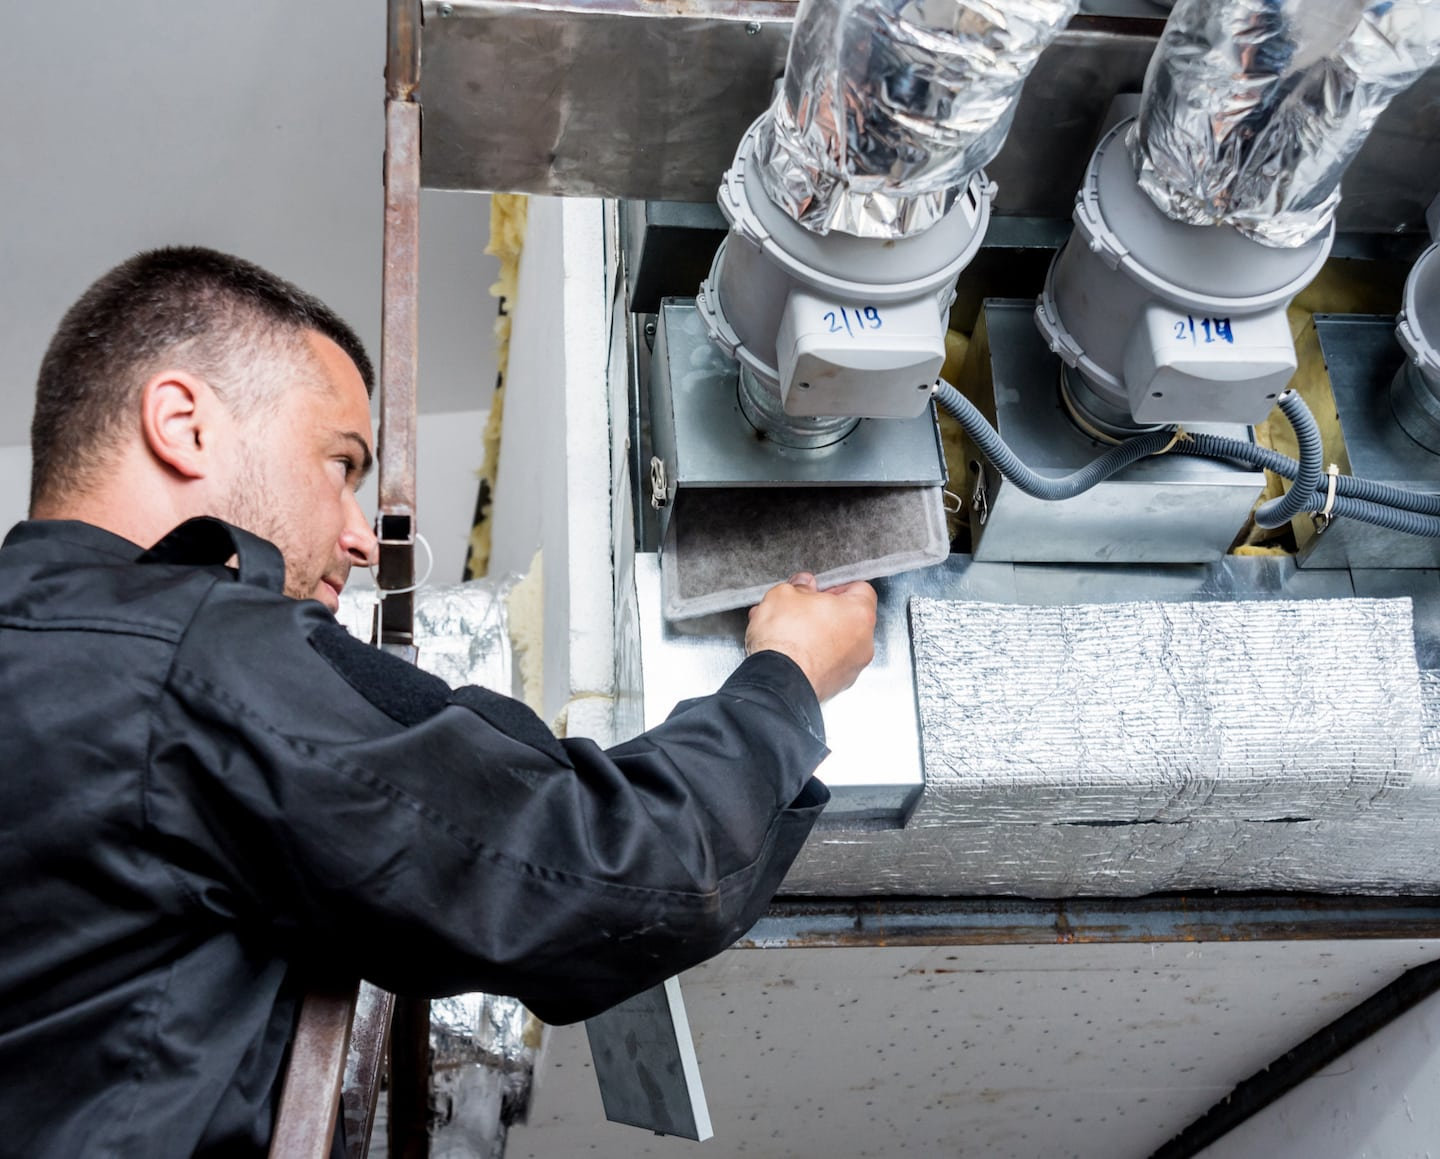 best air duct cleaning services shelby mi image, Best Hard Money Lenders, top hard money lenders, best private money lenders